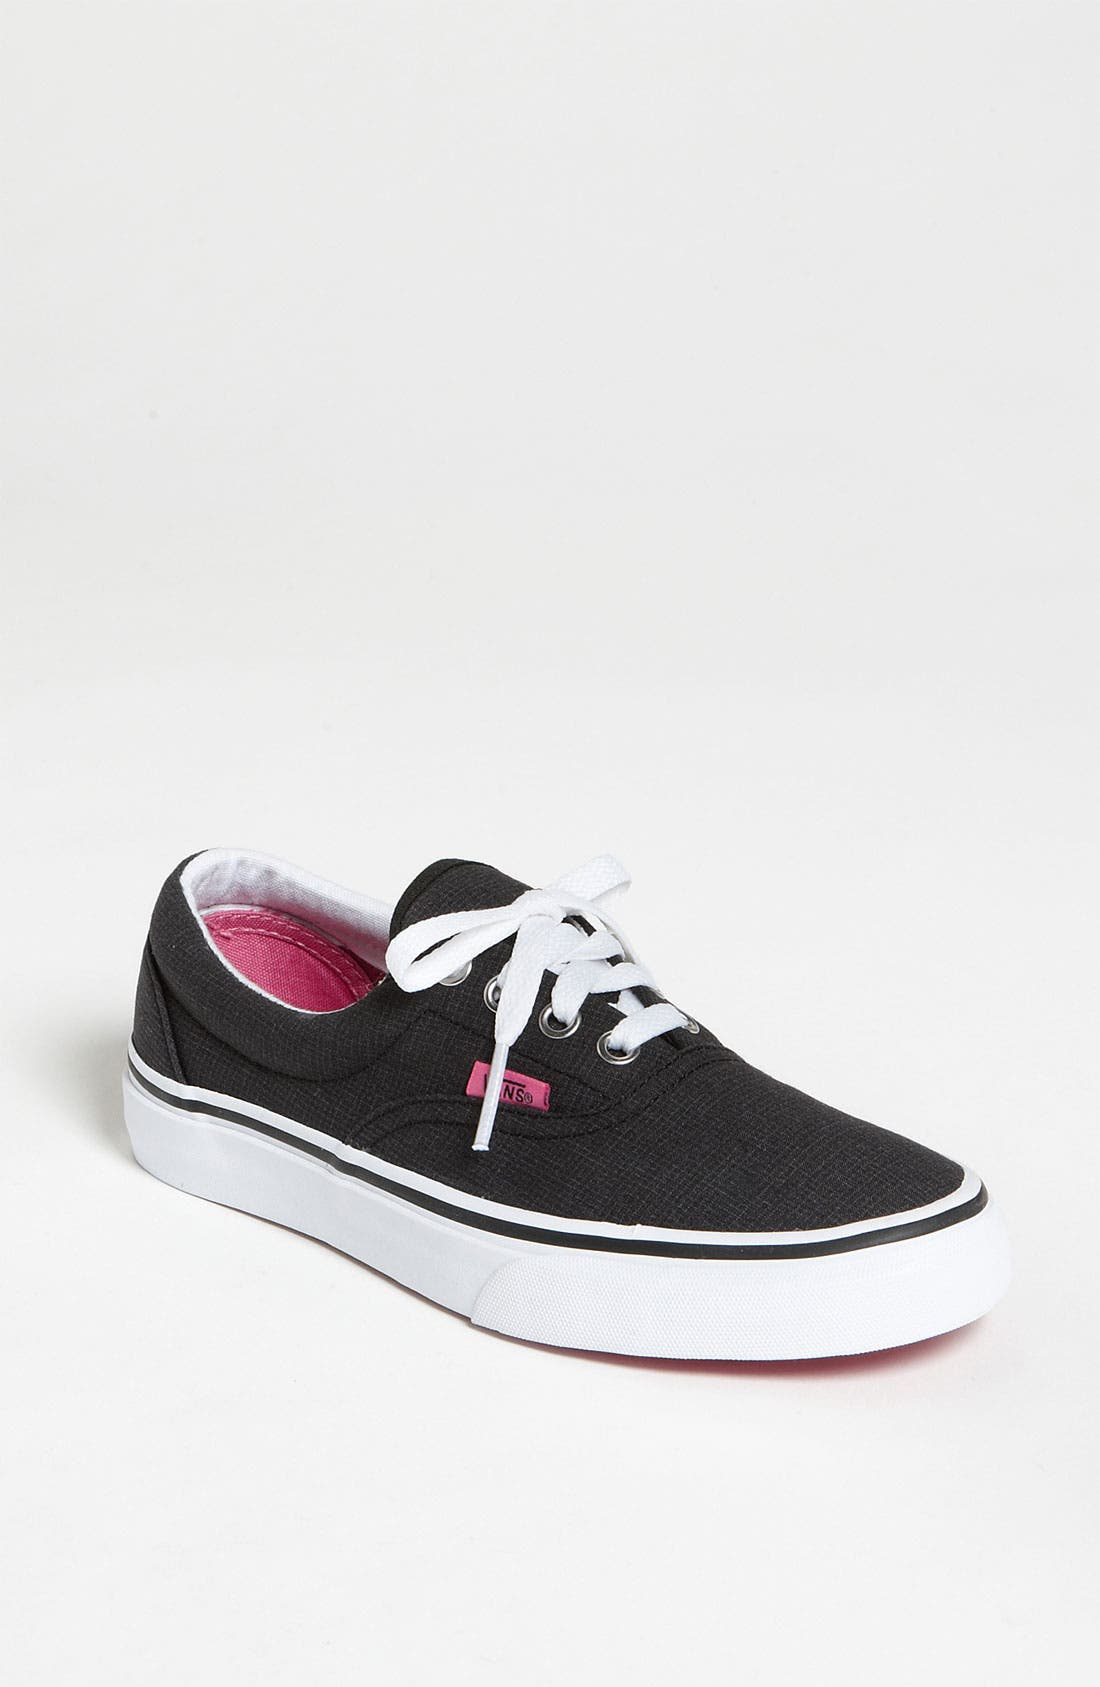 Alternate Image 1 Selected - Vans 'Authentic - Dressy' Sneaker (Women)